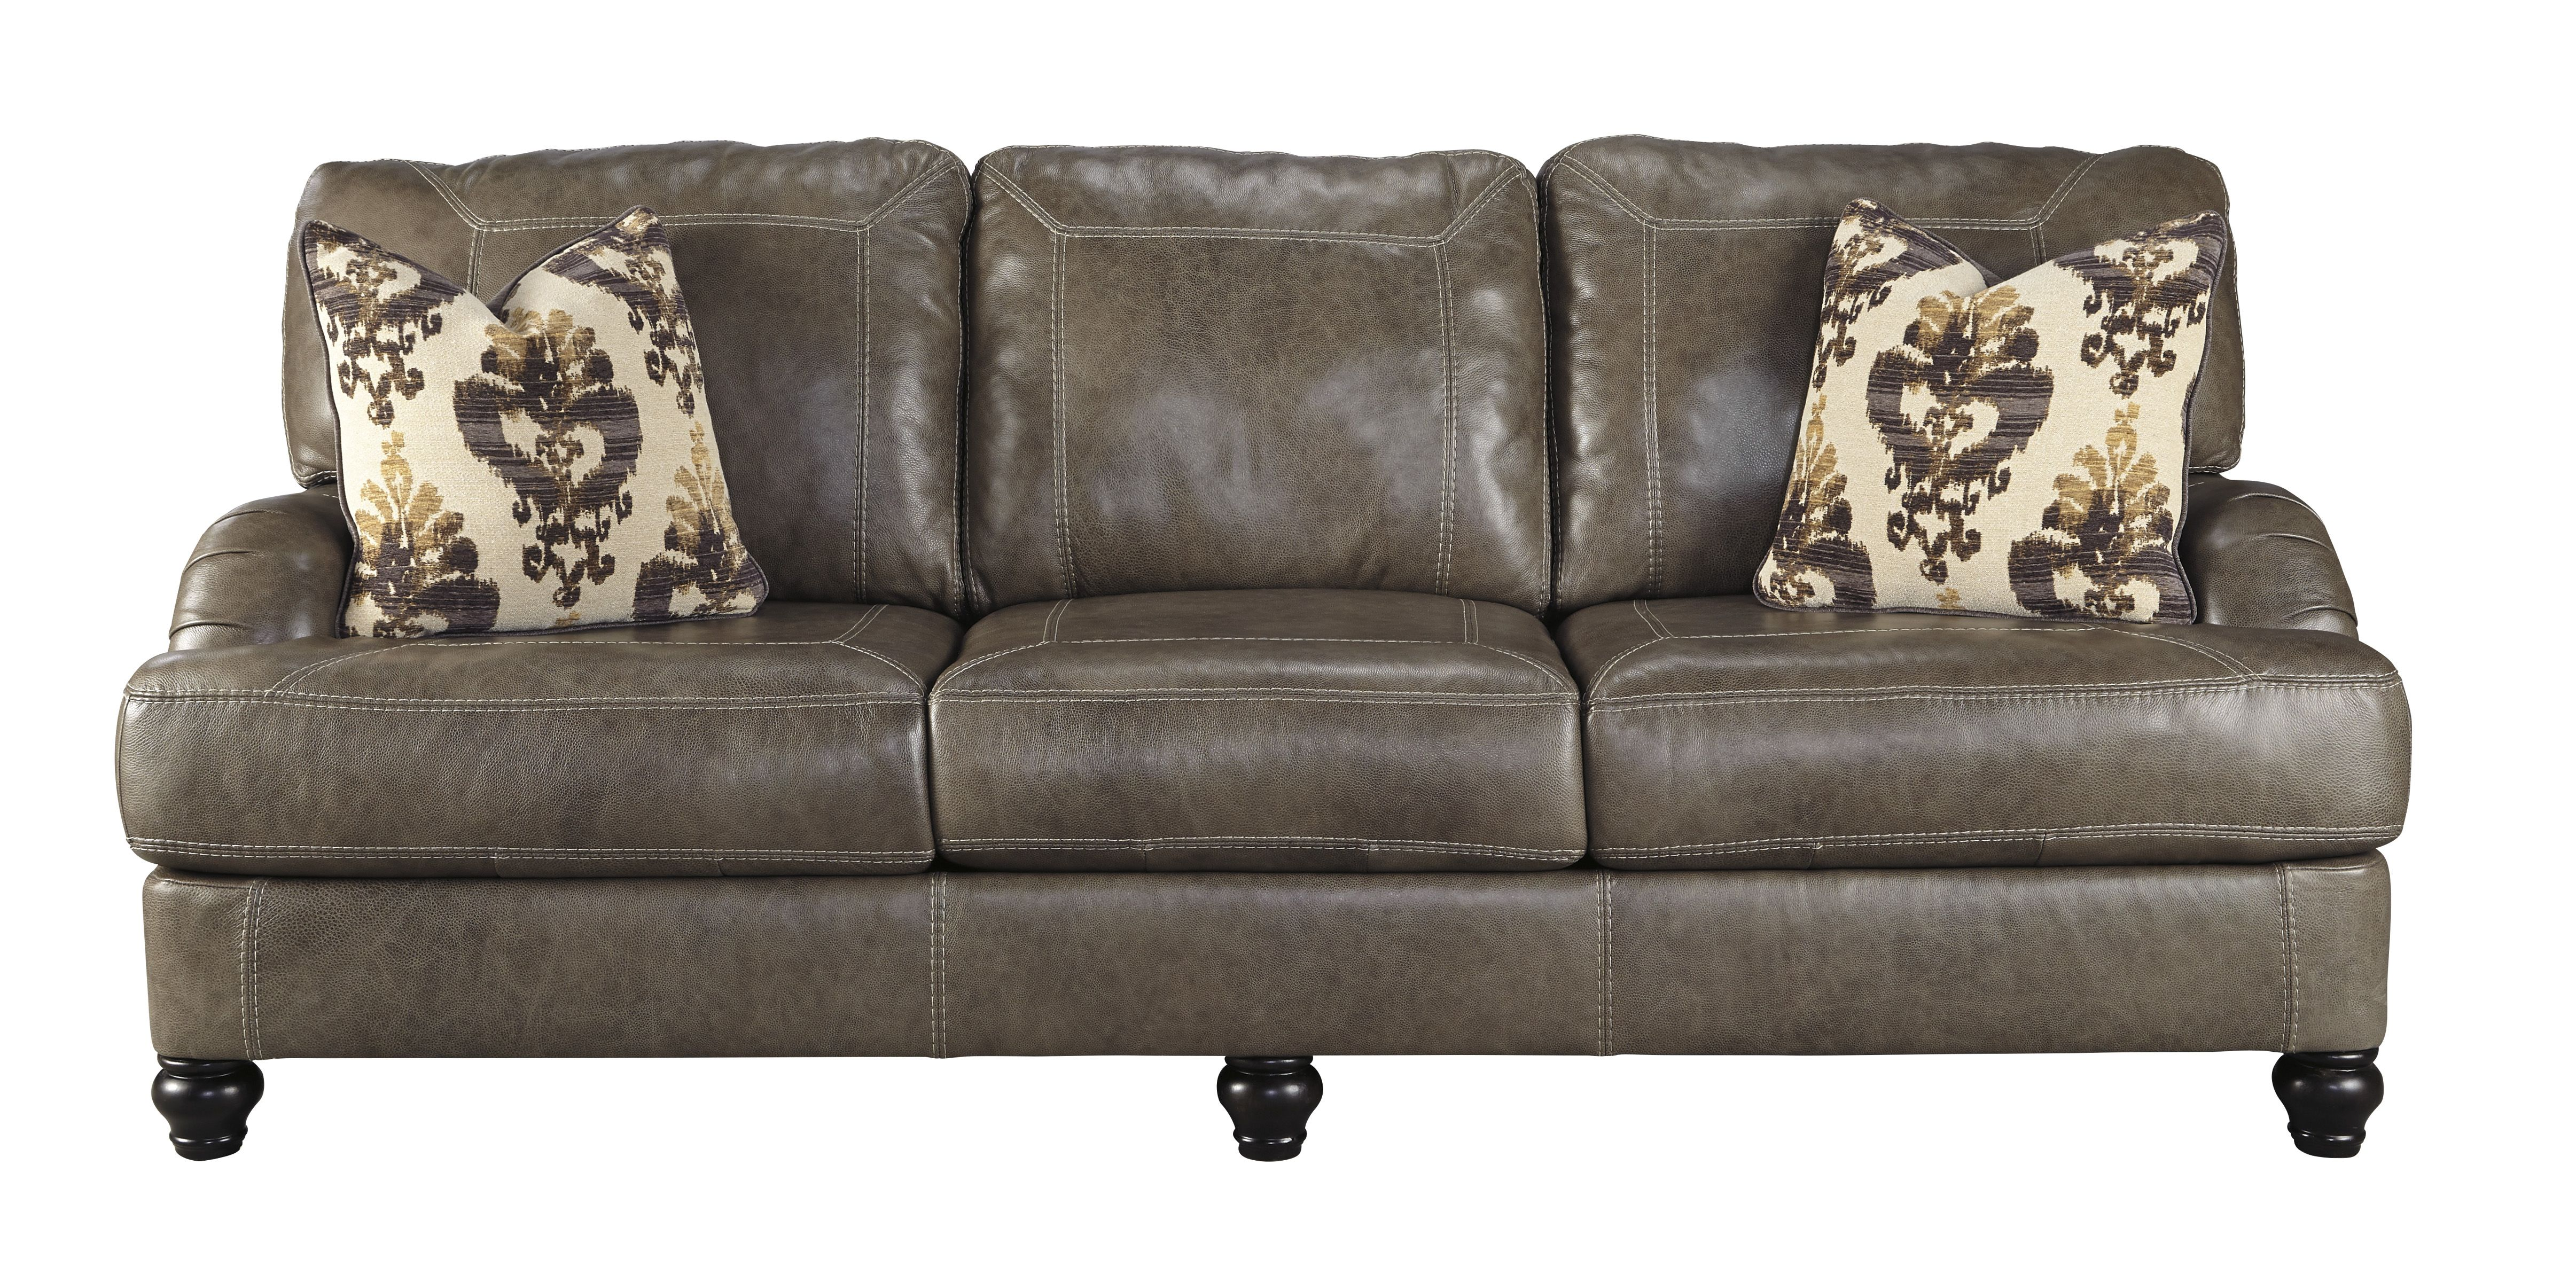 Lowest Price On Signature Design By Ashley Kannerdy Quarry Sofa 8040238.  Shop Today!